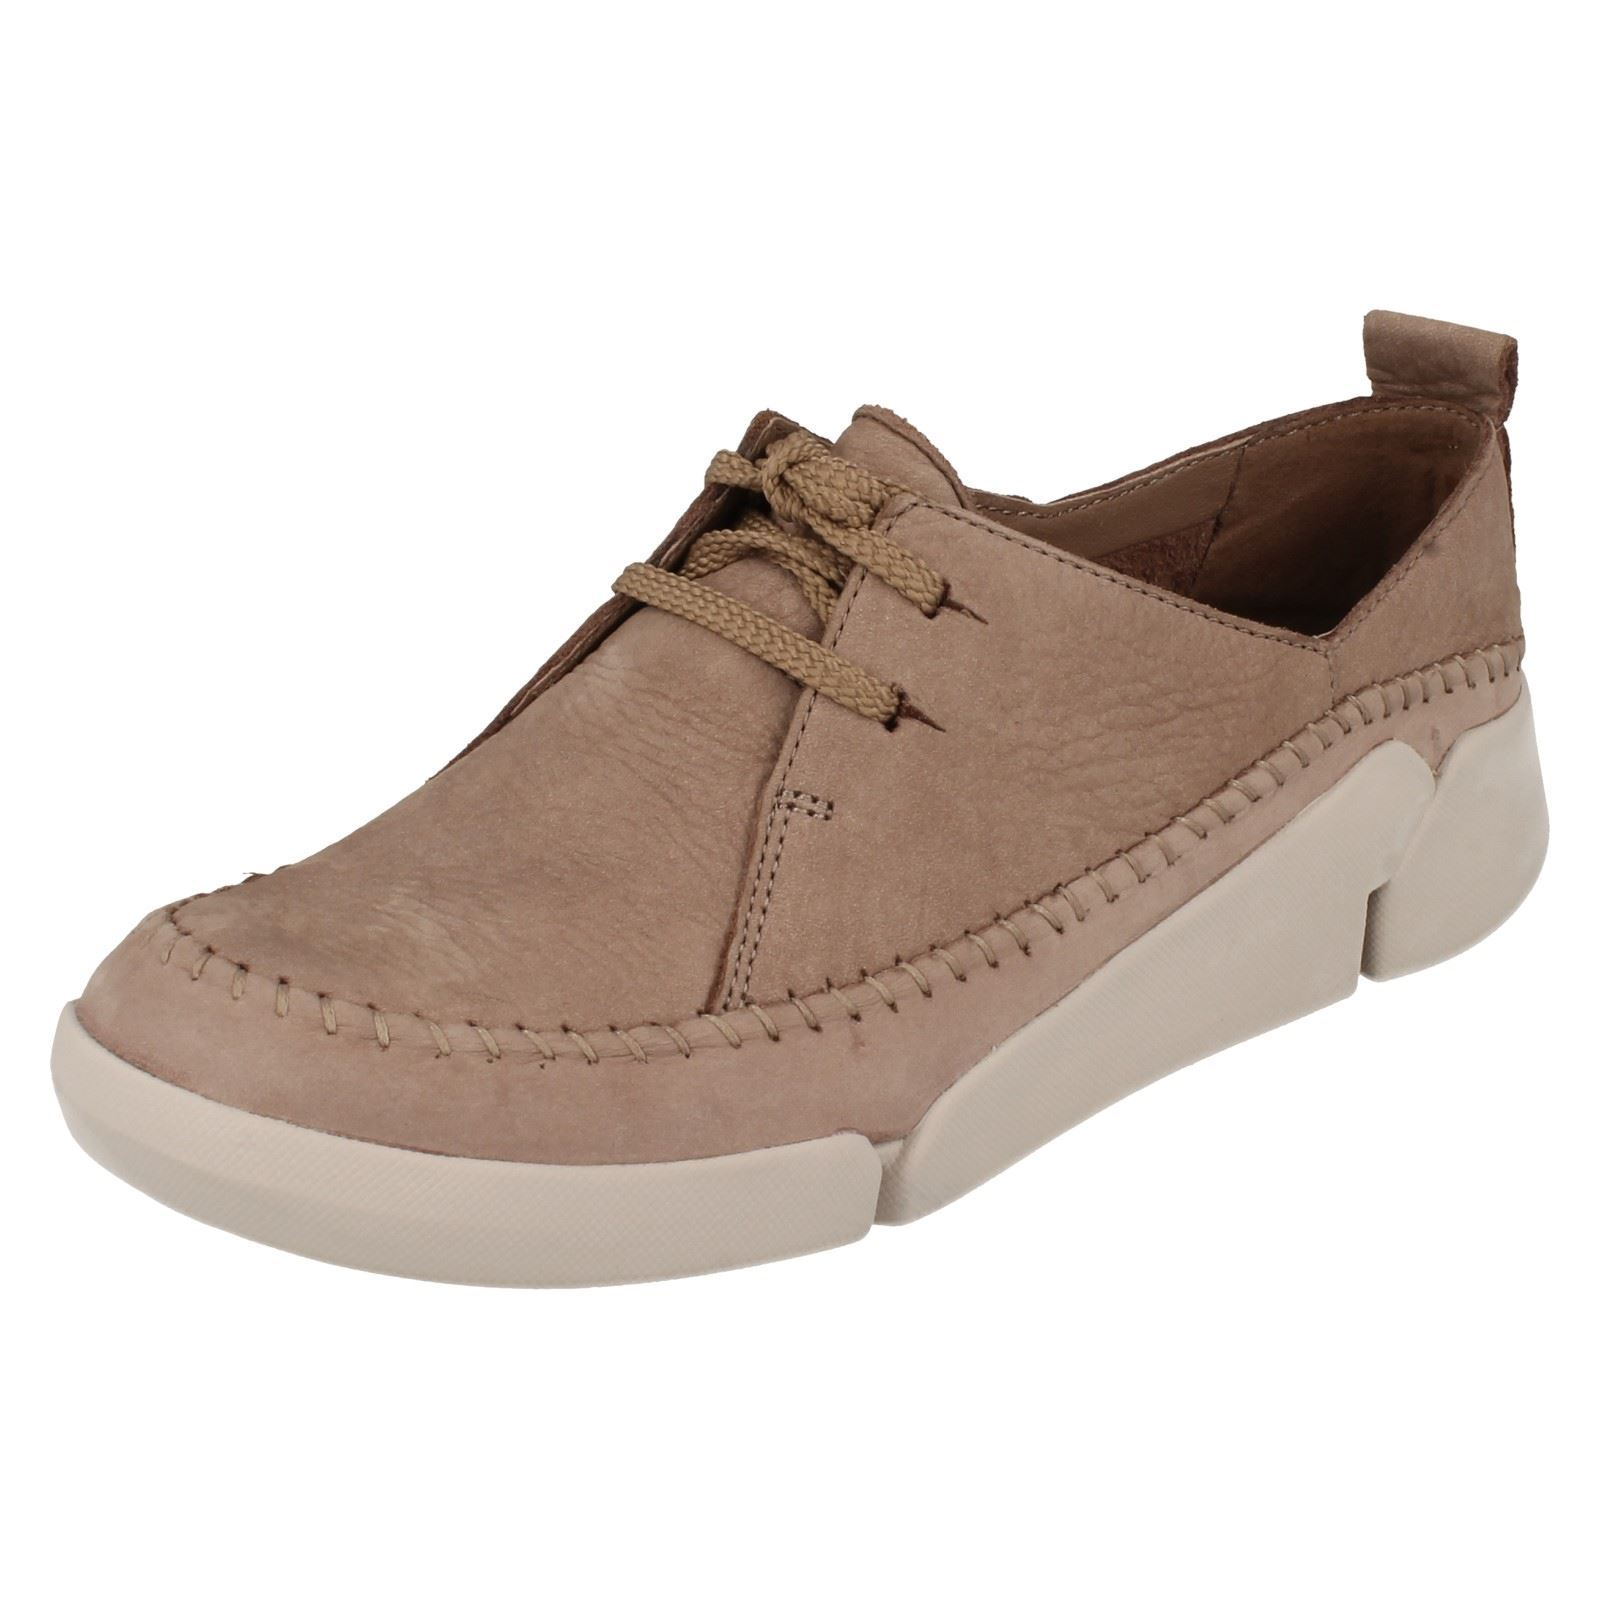 Details about Ladies Clarks Casual Lace Up Pumps 'Tri Angel'